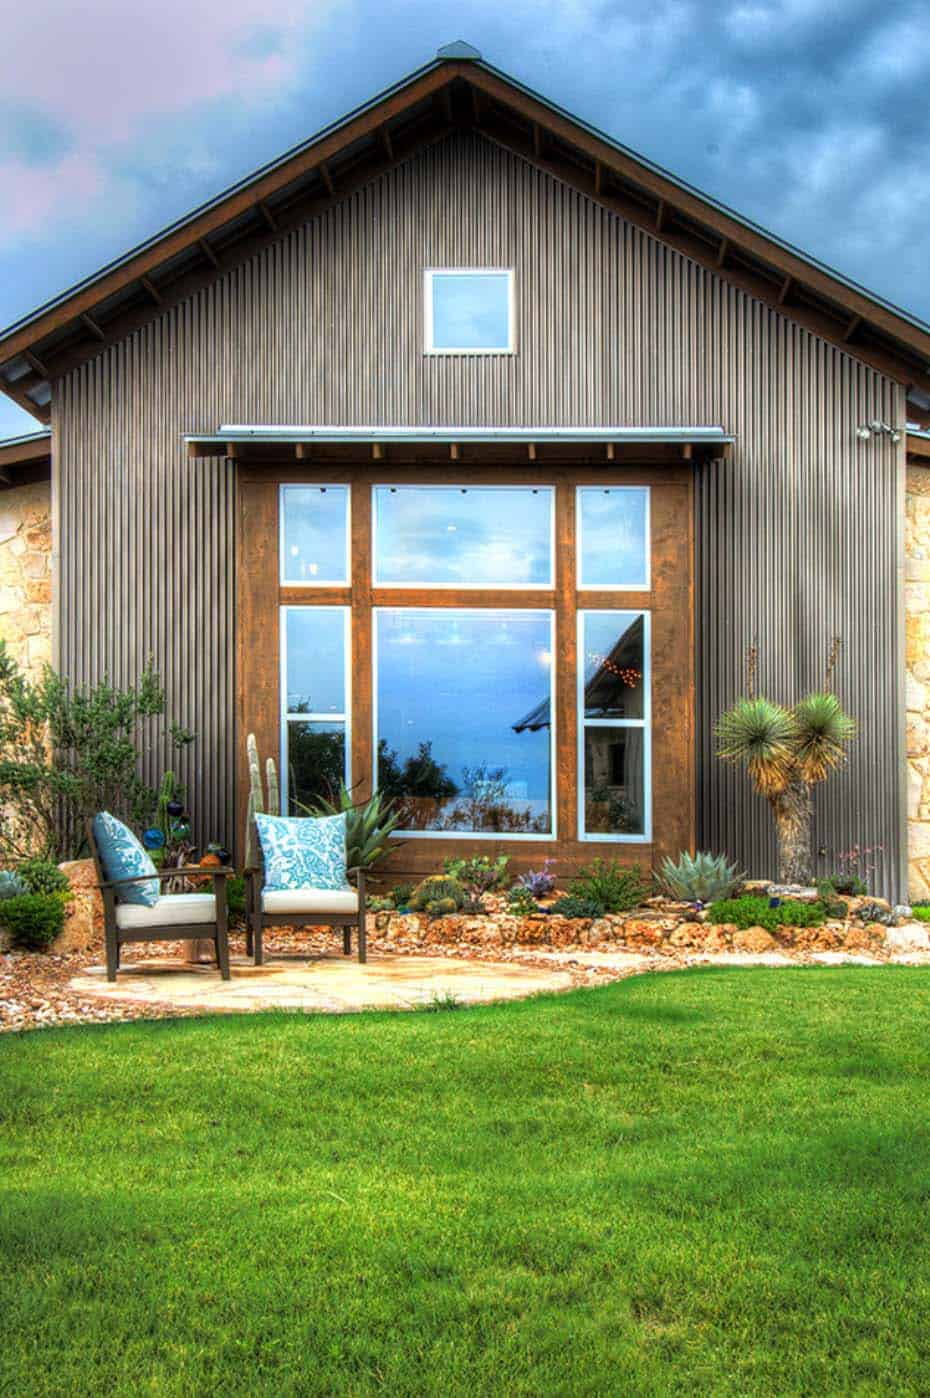 Ranch House-Barn-Burleson Design Group-18-1 Kindesign